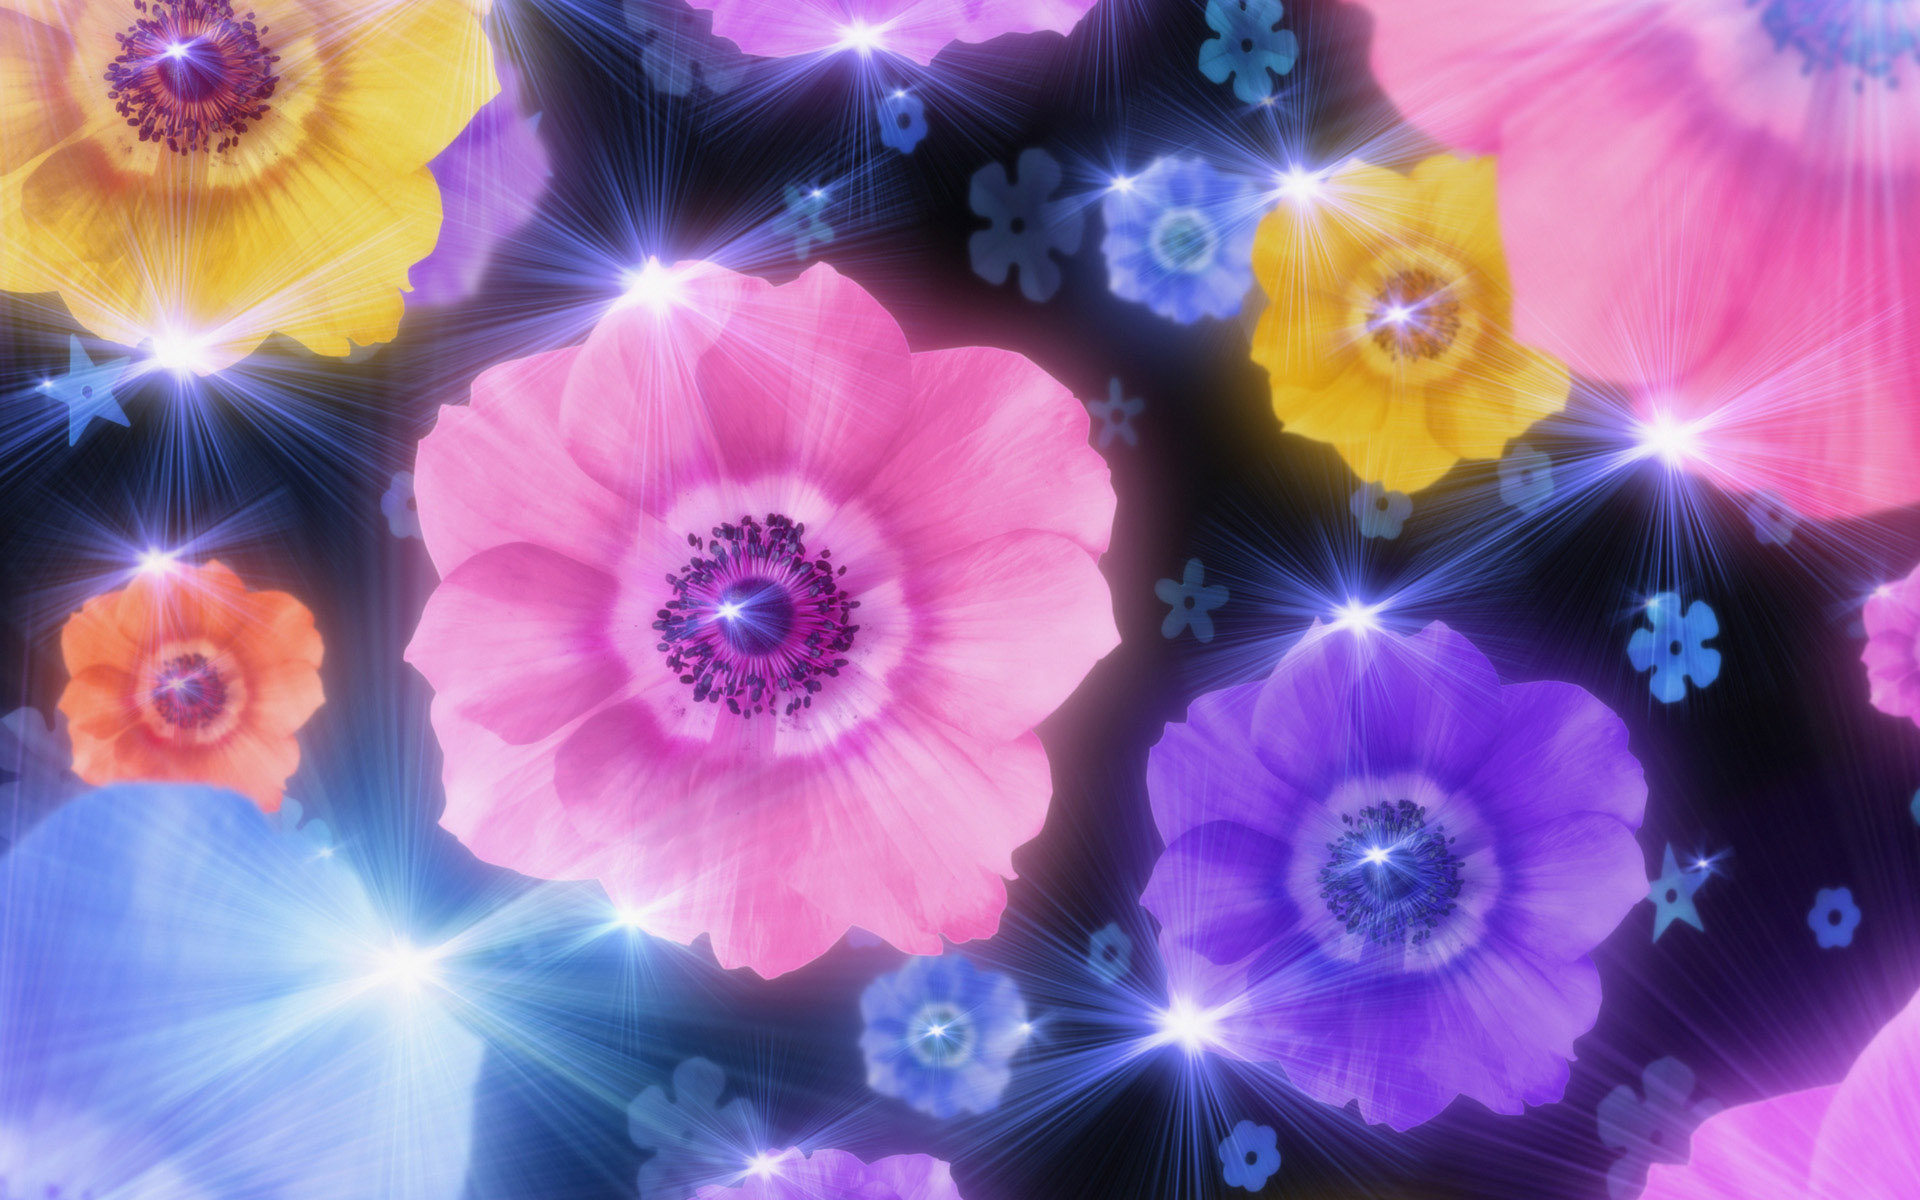 Animated Wallpaper Mobile Flower Background Image Wallpapers 1920x1200